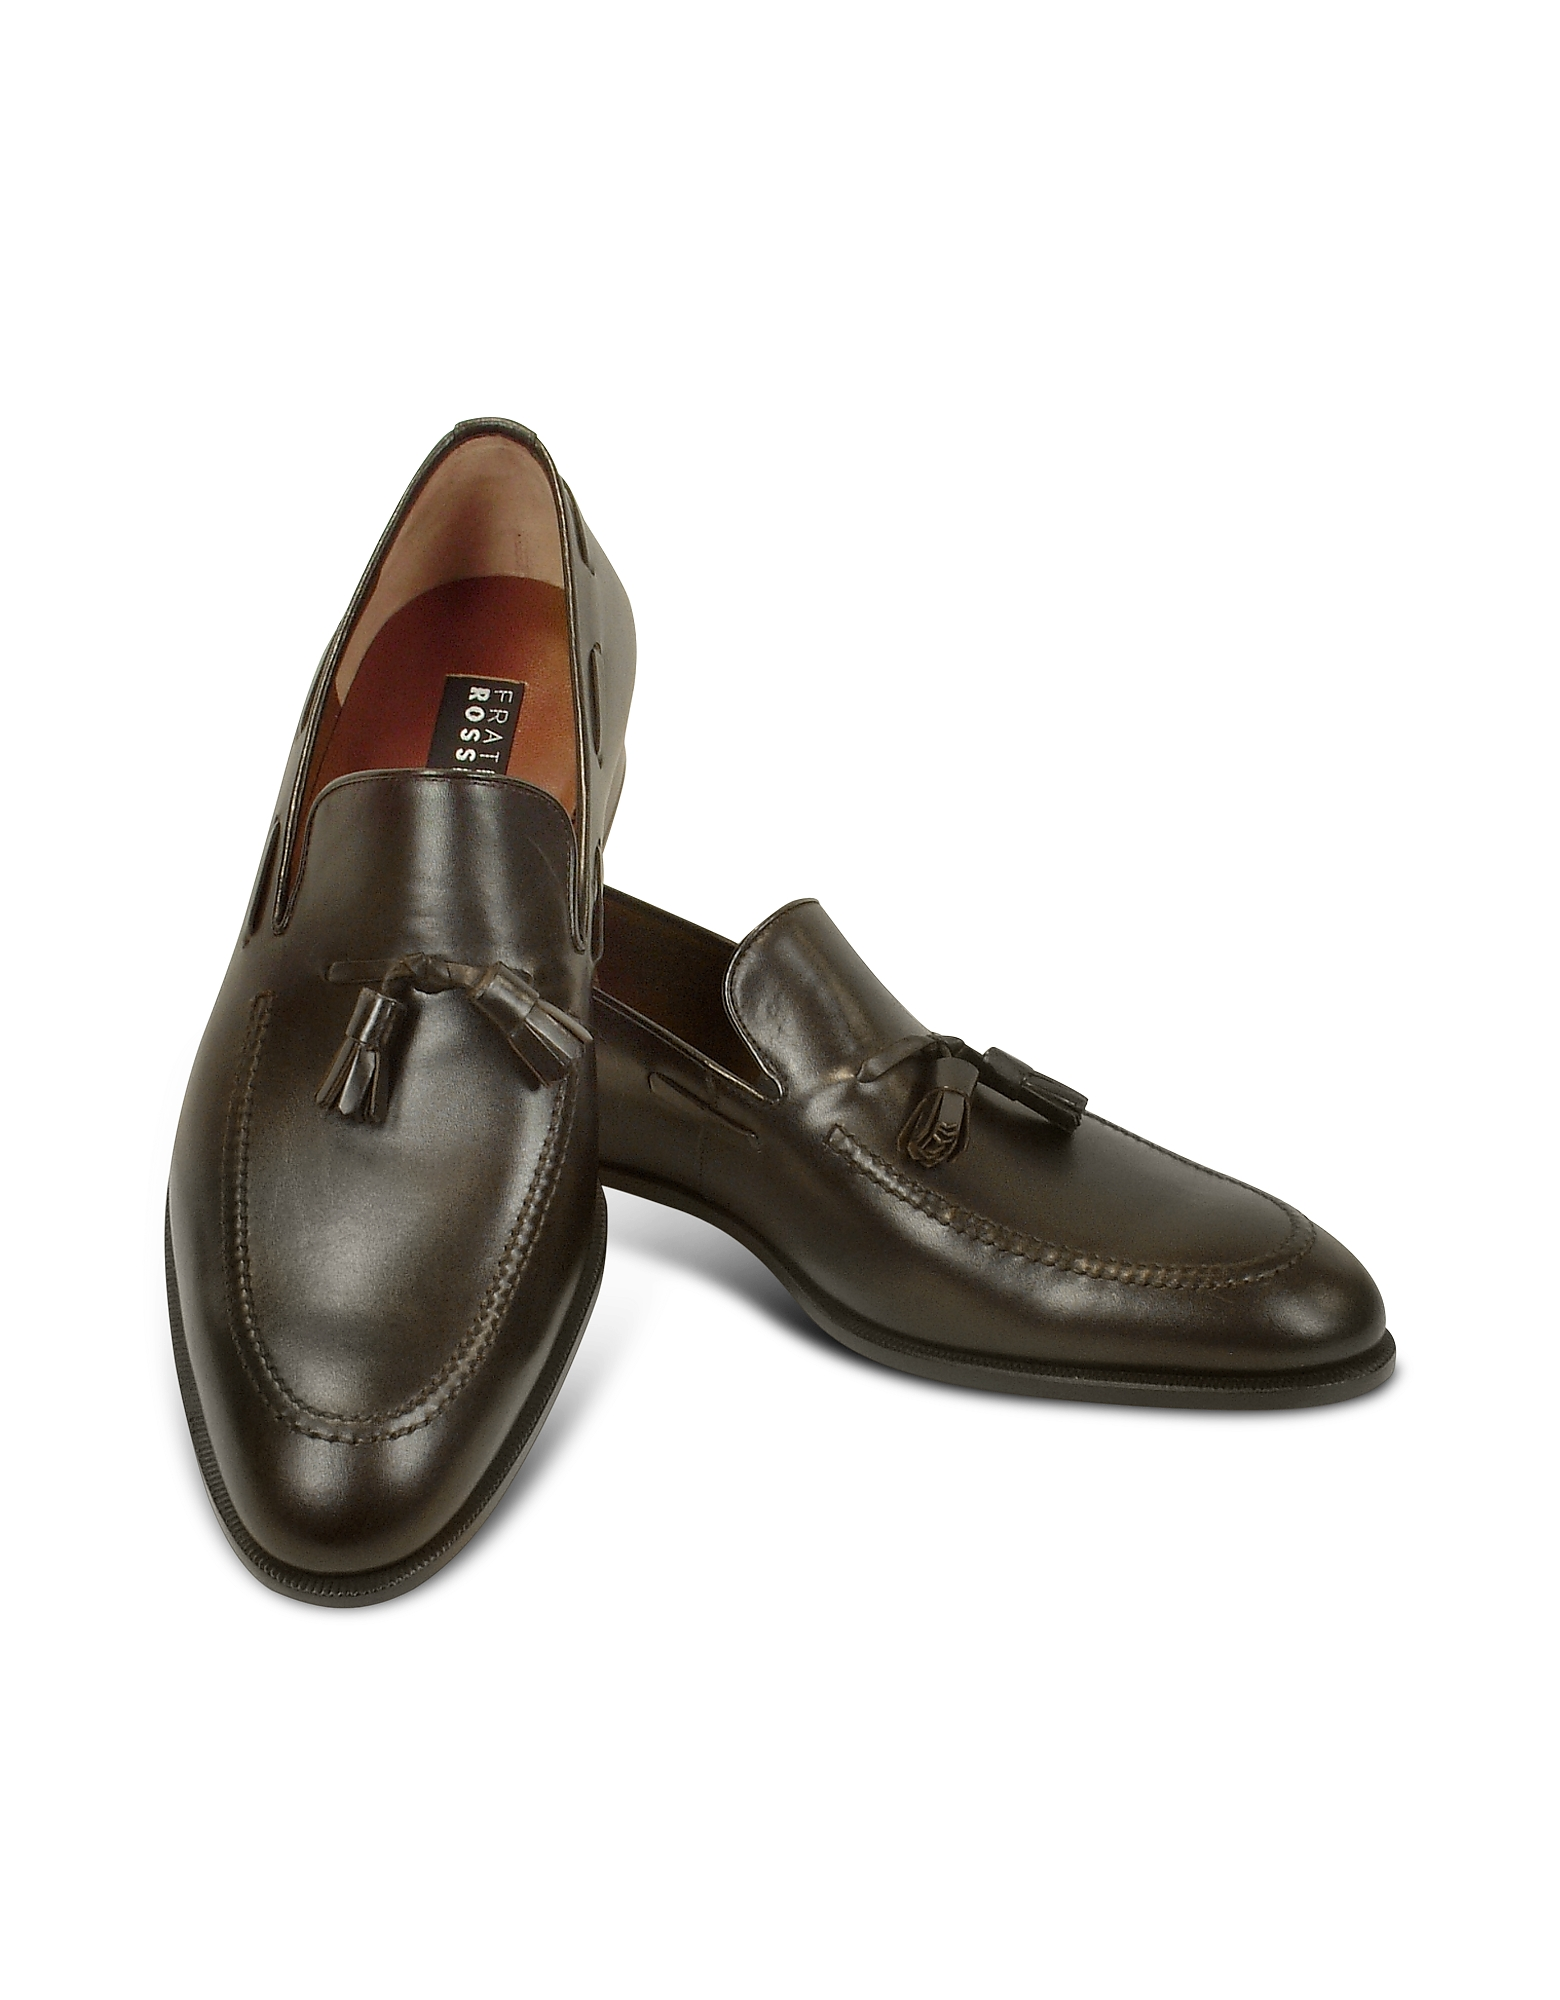 Fratelli Rossetti Shoes, Dark Brown Calf Leather Tassel Loafer Shoes